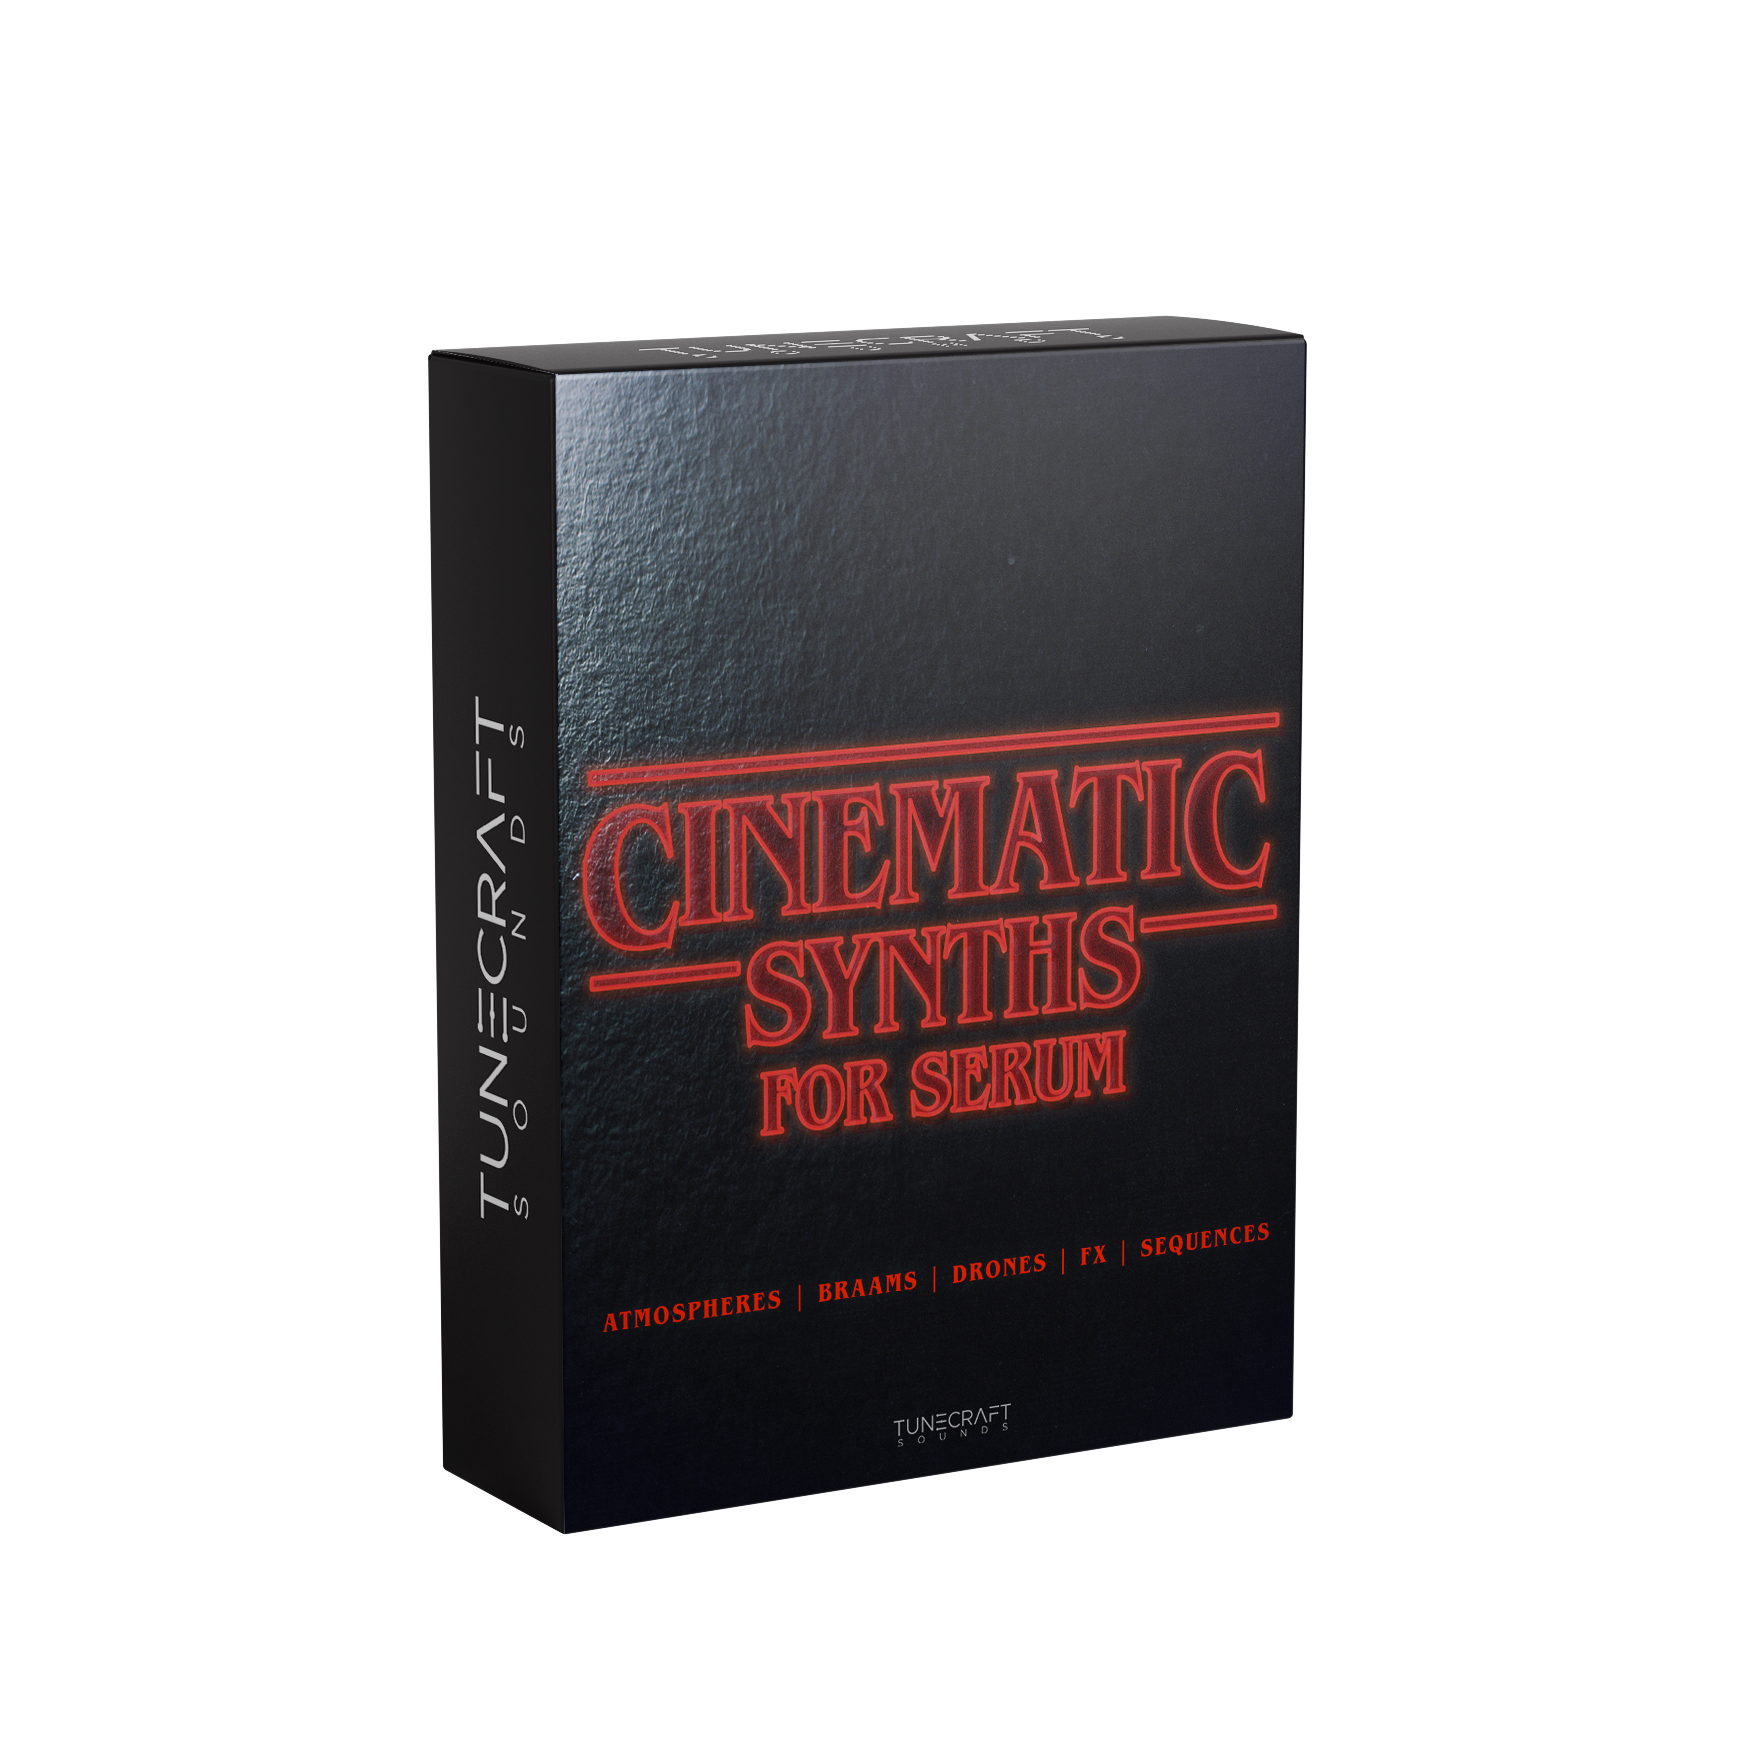 Cinematic-synths-for-Serum-3D-Box-NS